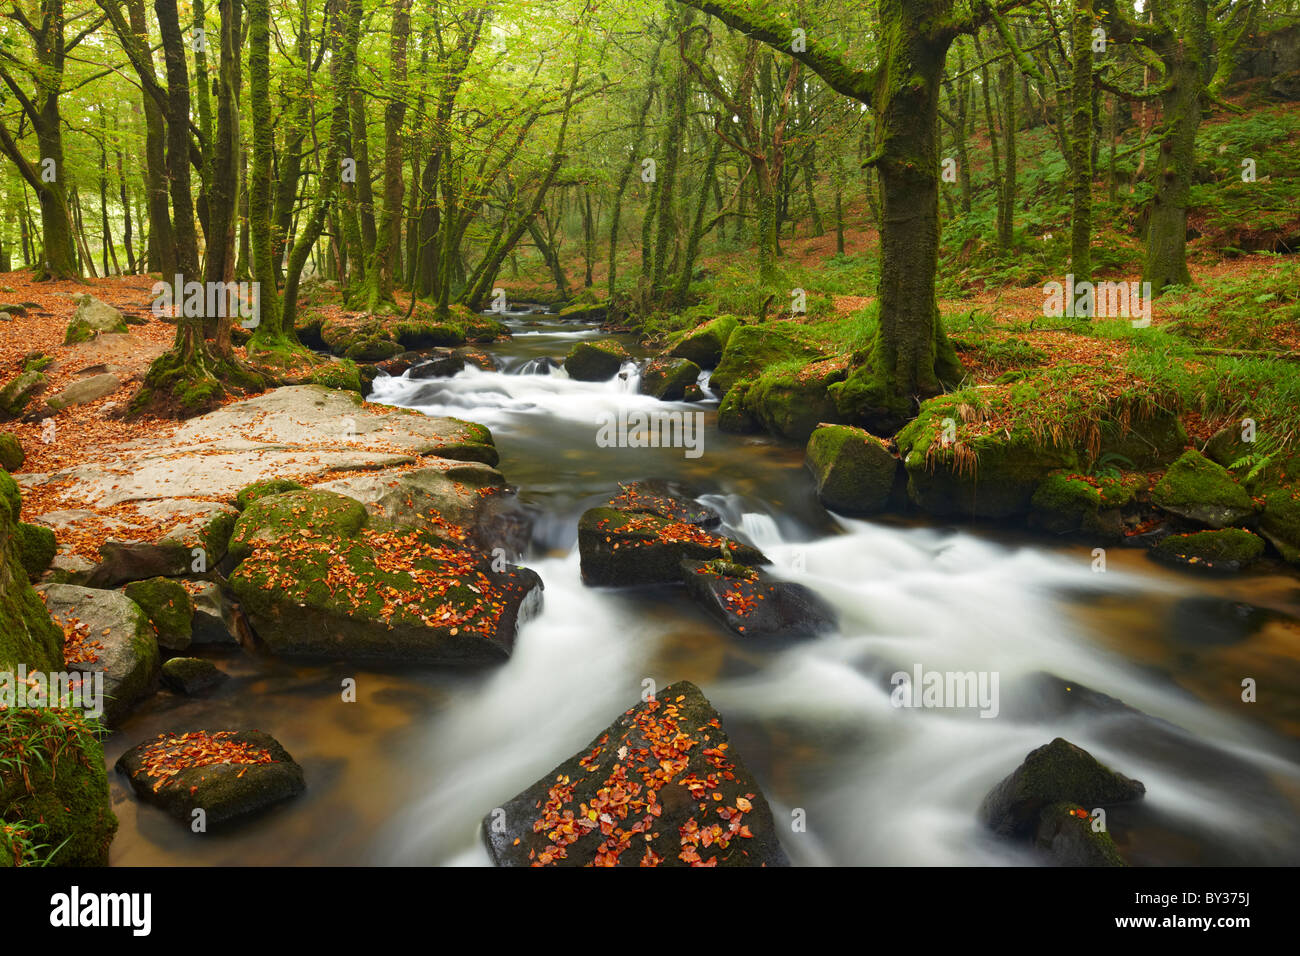 Golitha falls, a section of small waterfalls flowing through ancient woodland on Bodmin Moor - Stock Image